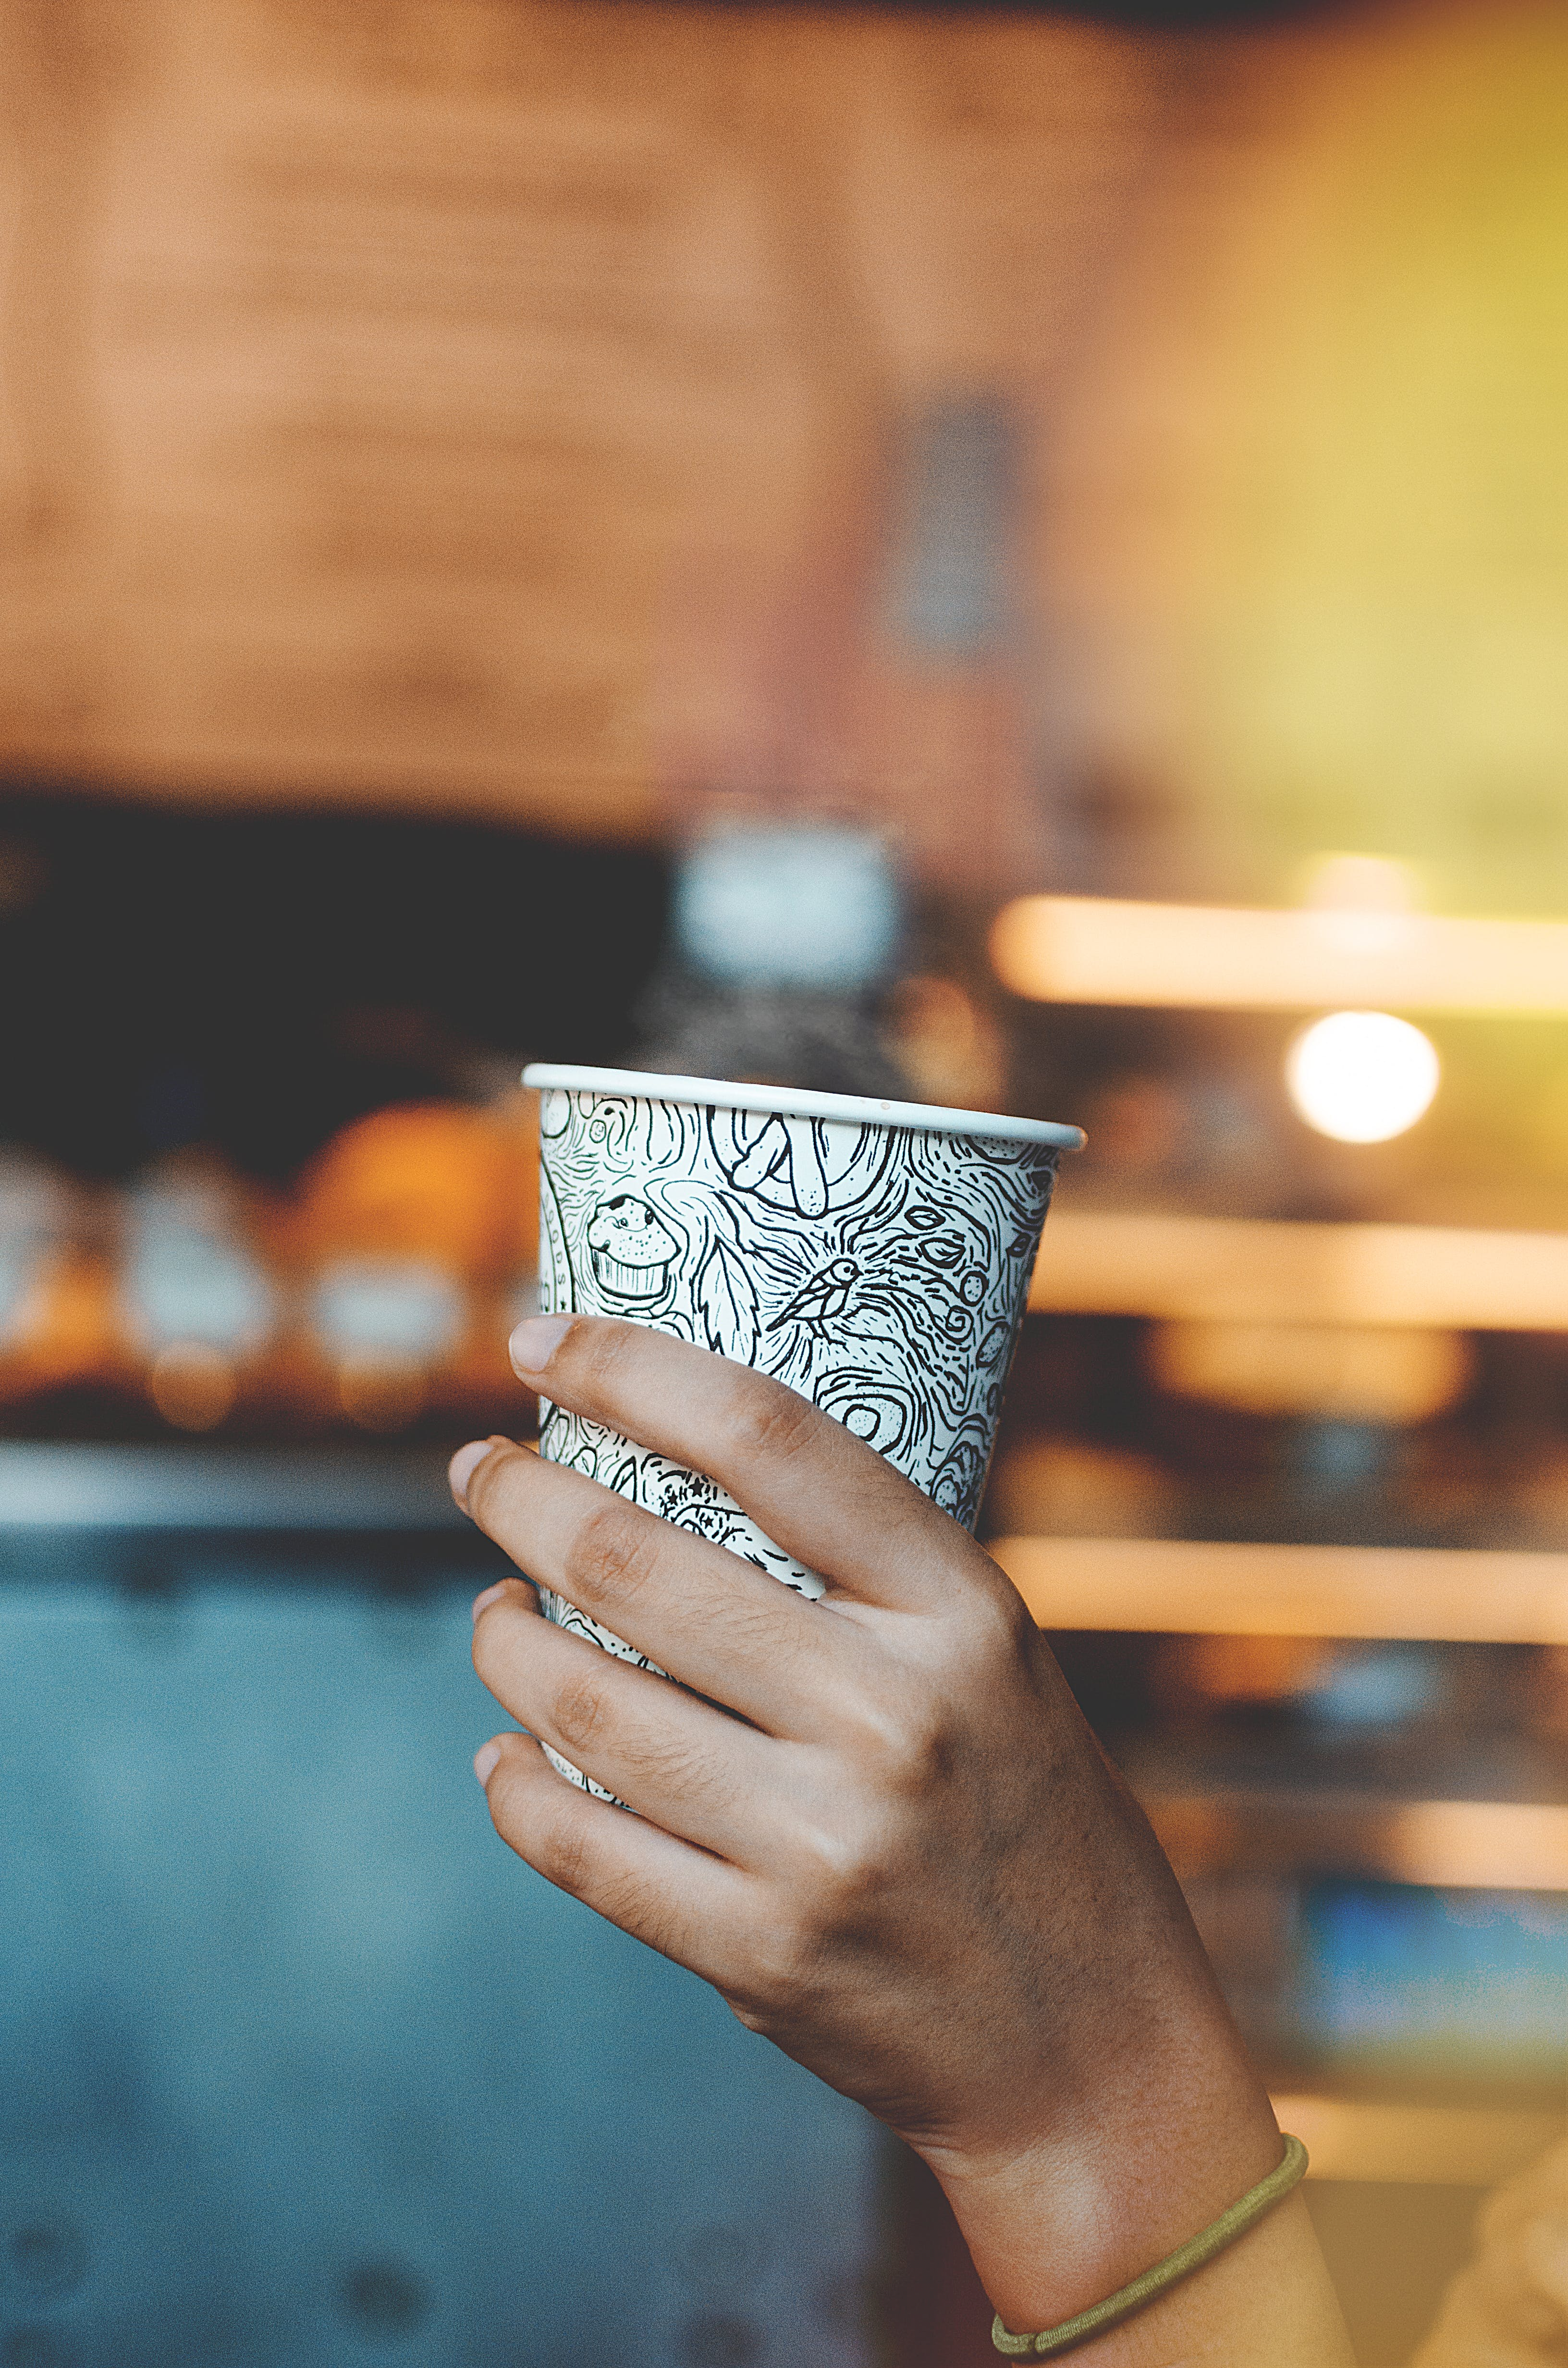 Person Holding White And Black Coffee Cup